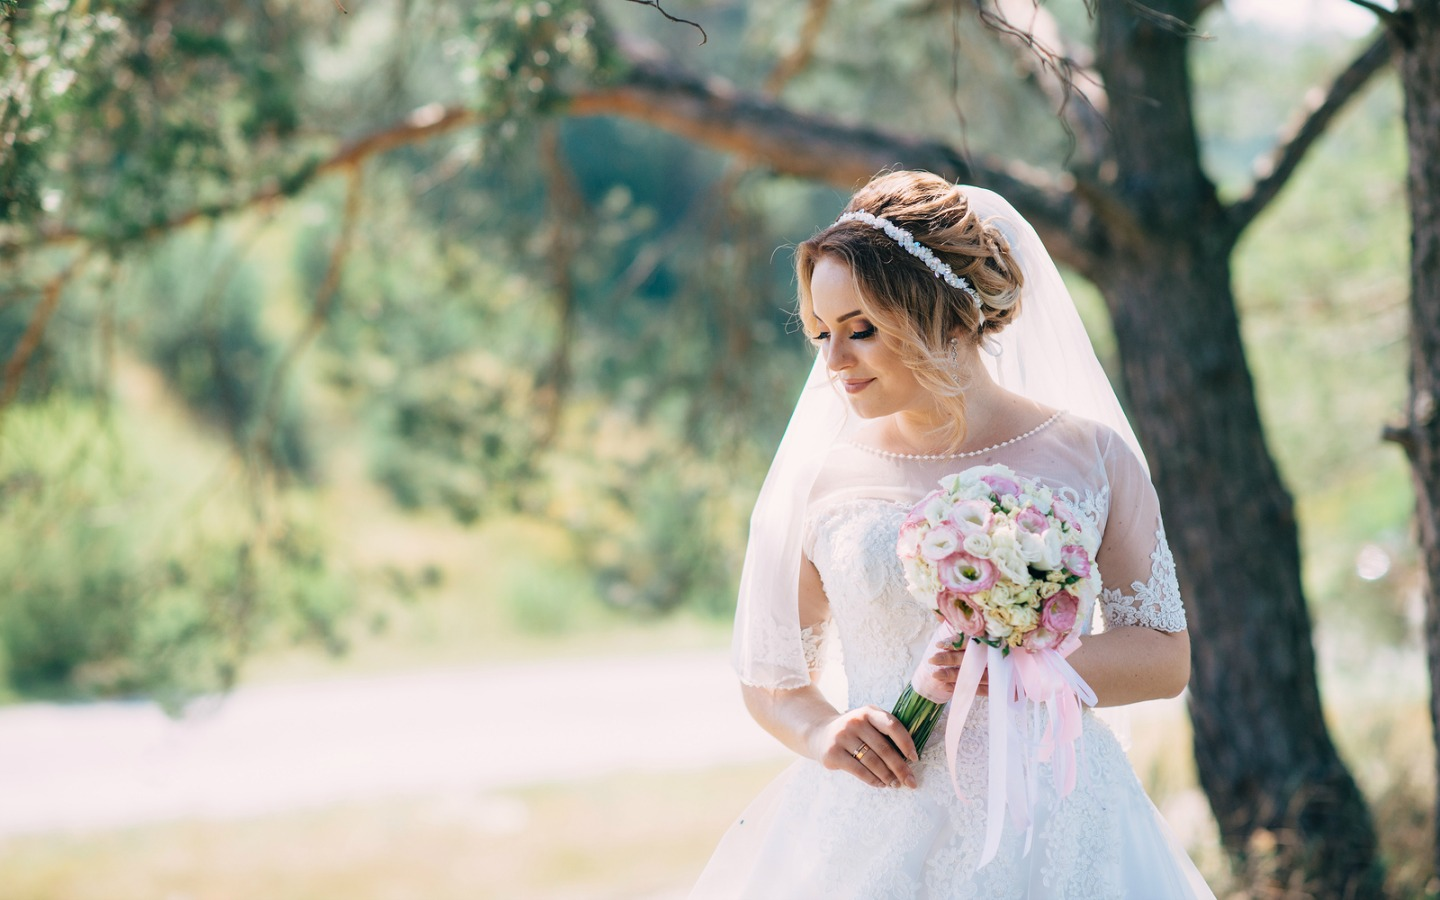 Bride smiles while walking past tree